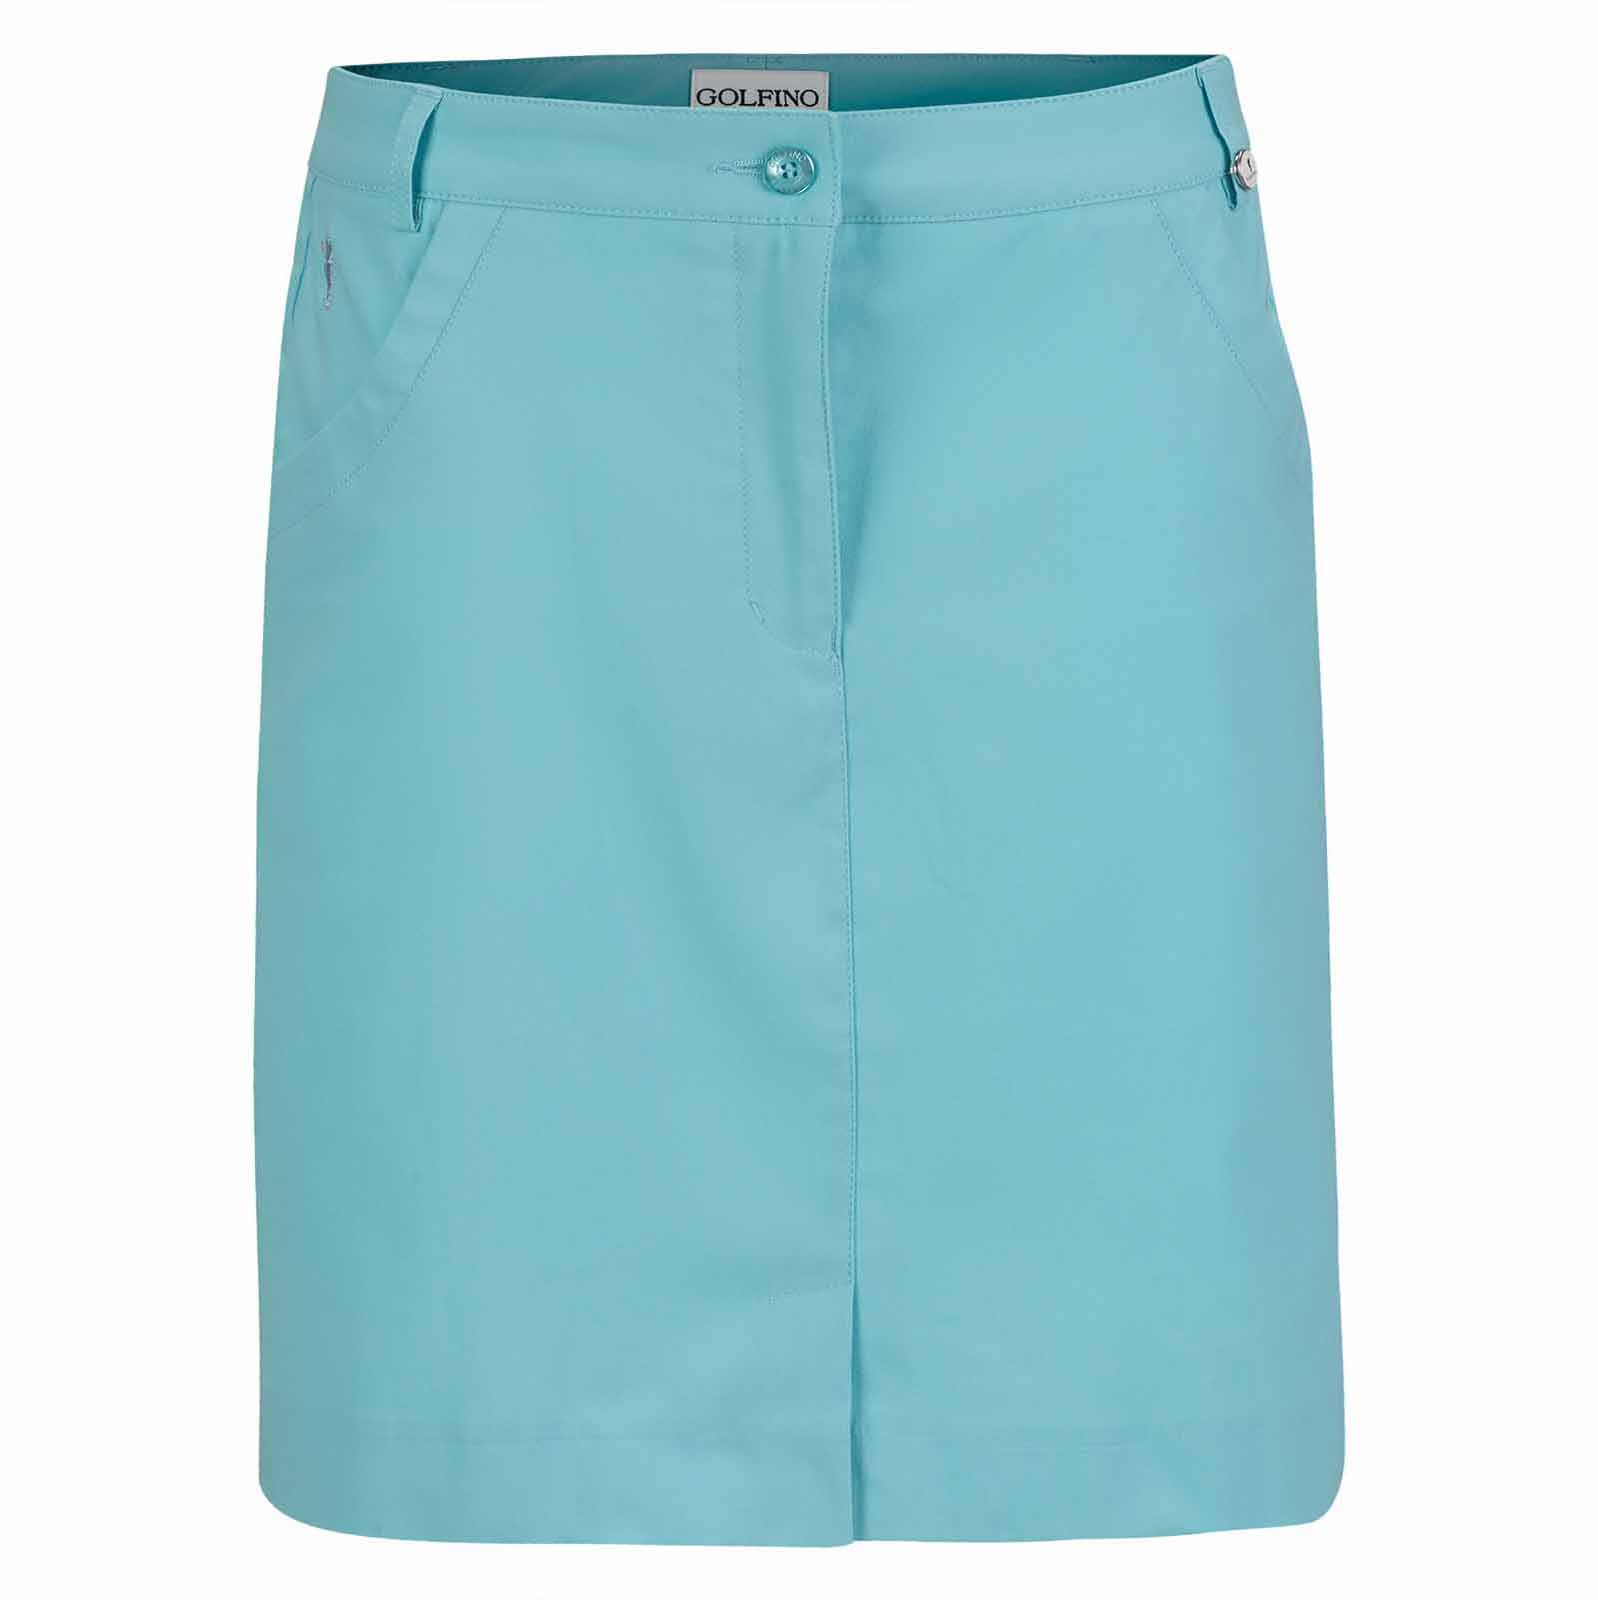 Sofiguard® ladies' medium golf skort with Techno Stretch and Sun Protection function